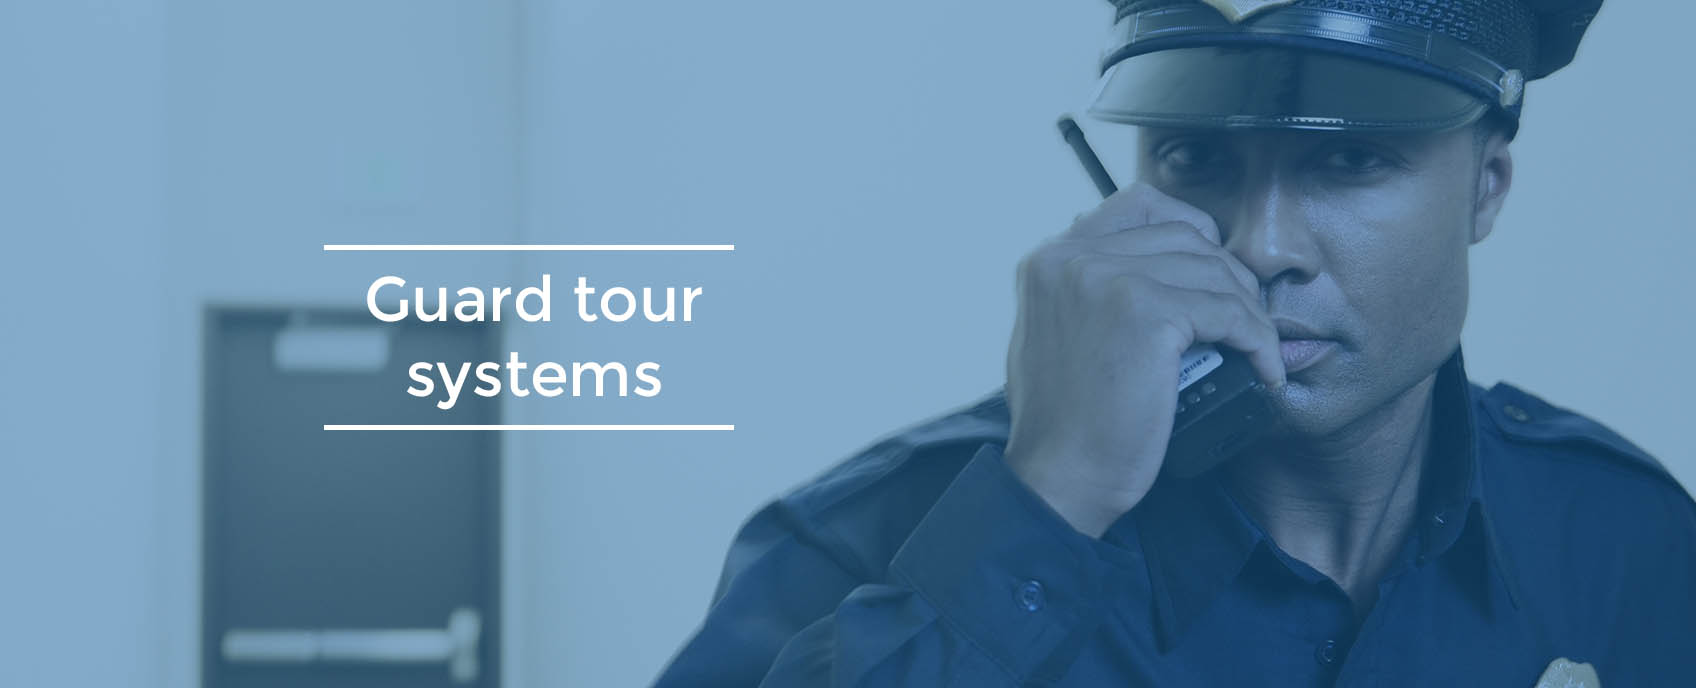 Guard Tour Systems Qr Patrol Real Time And Online